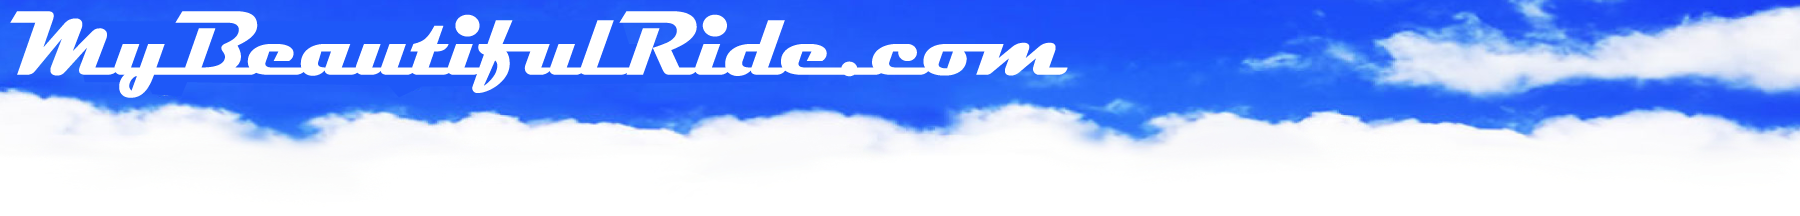 Sky Blue Banner with MyBeautiful Ride logo script